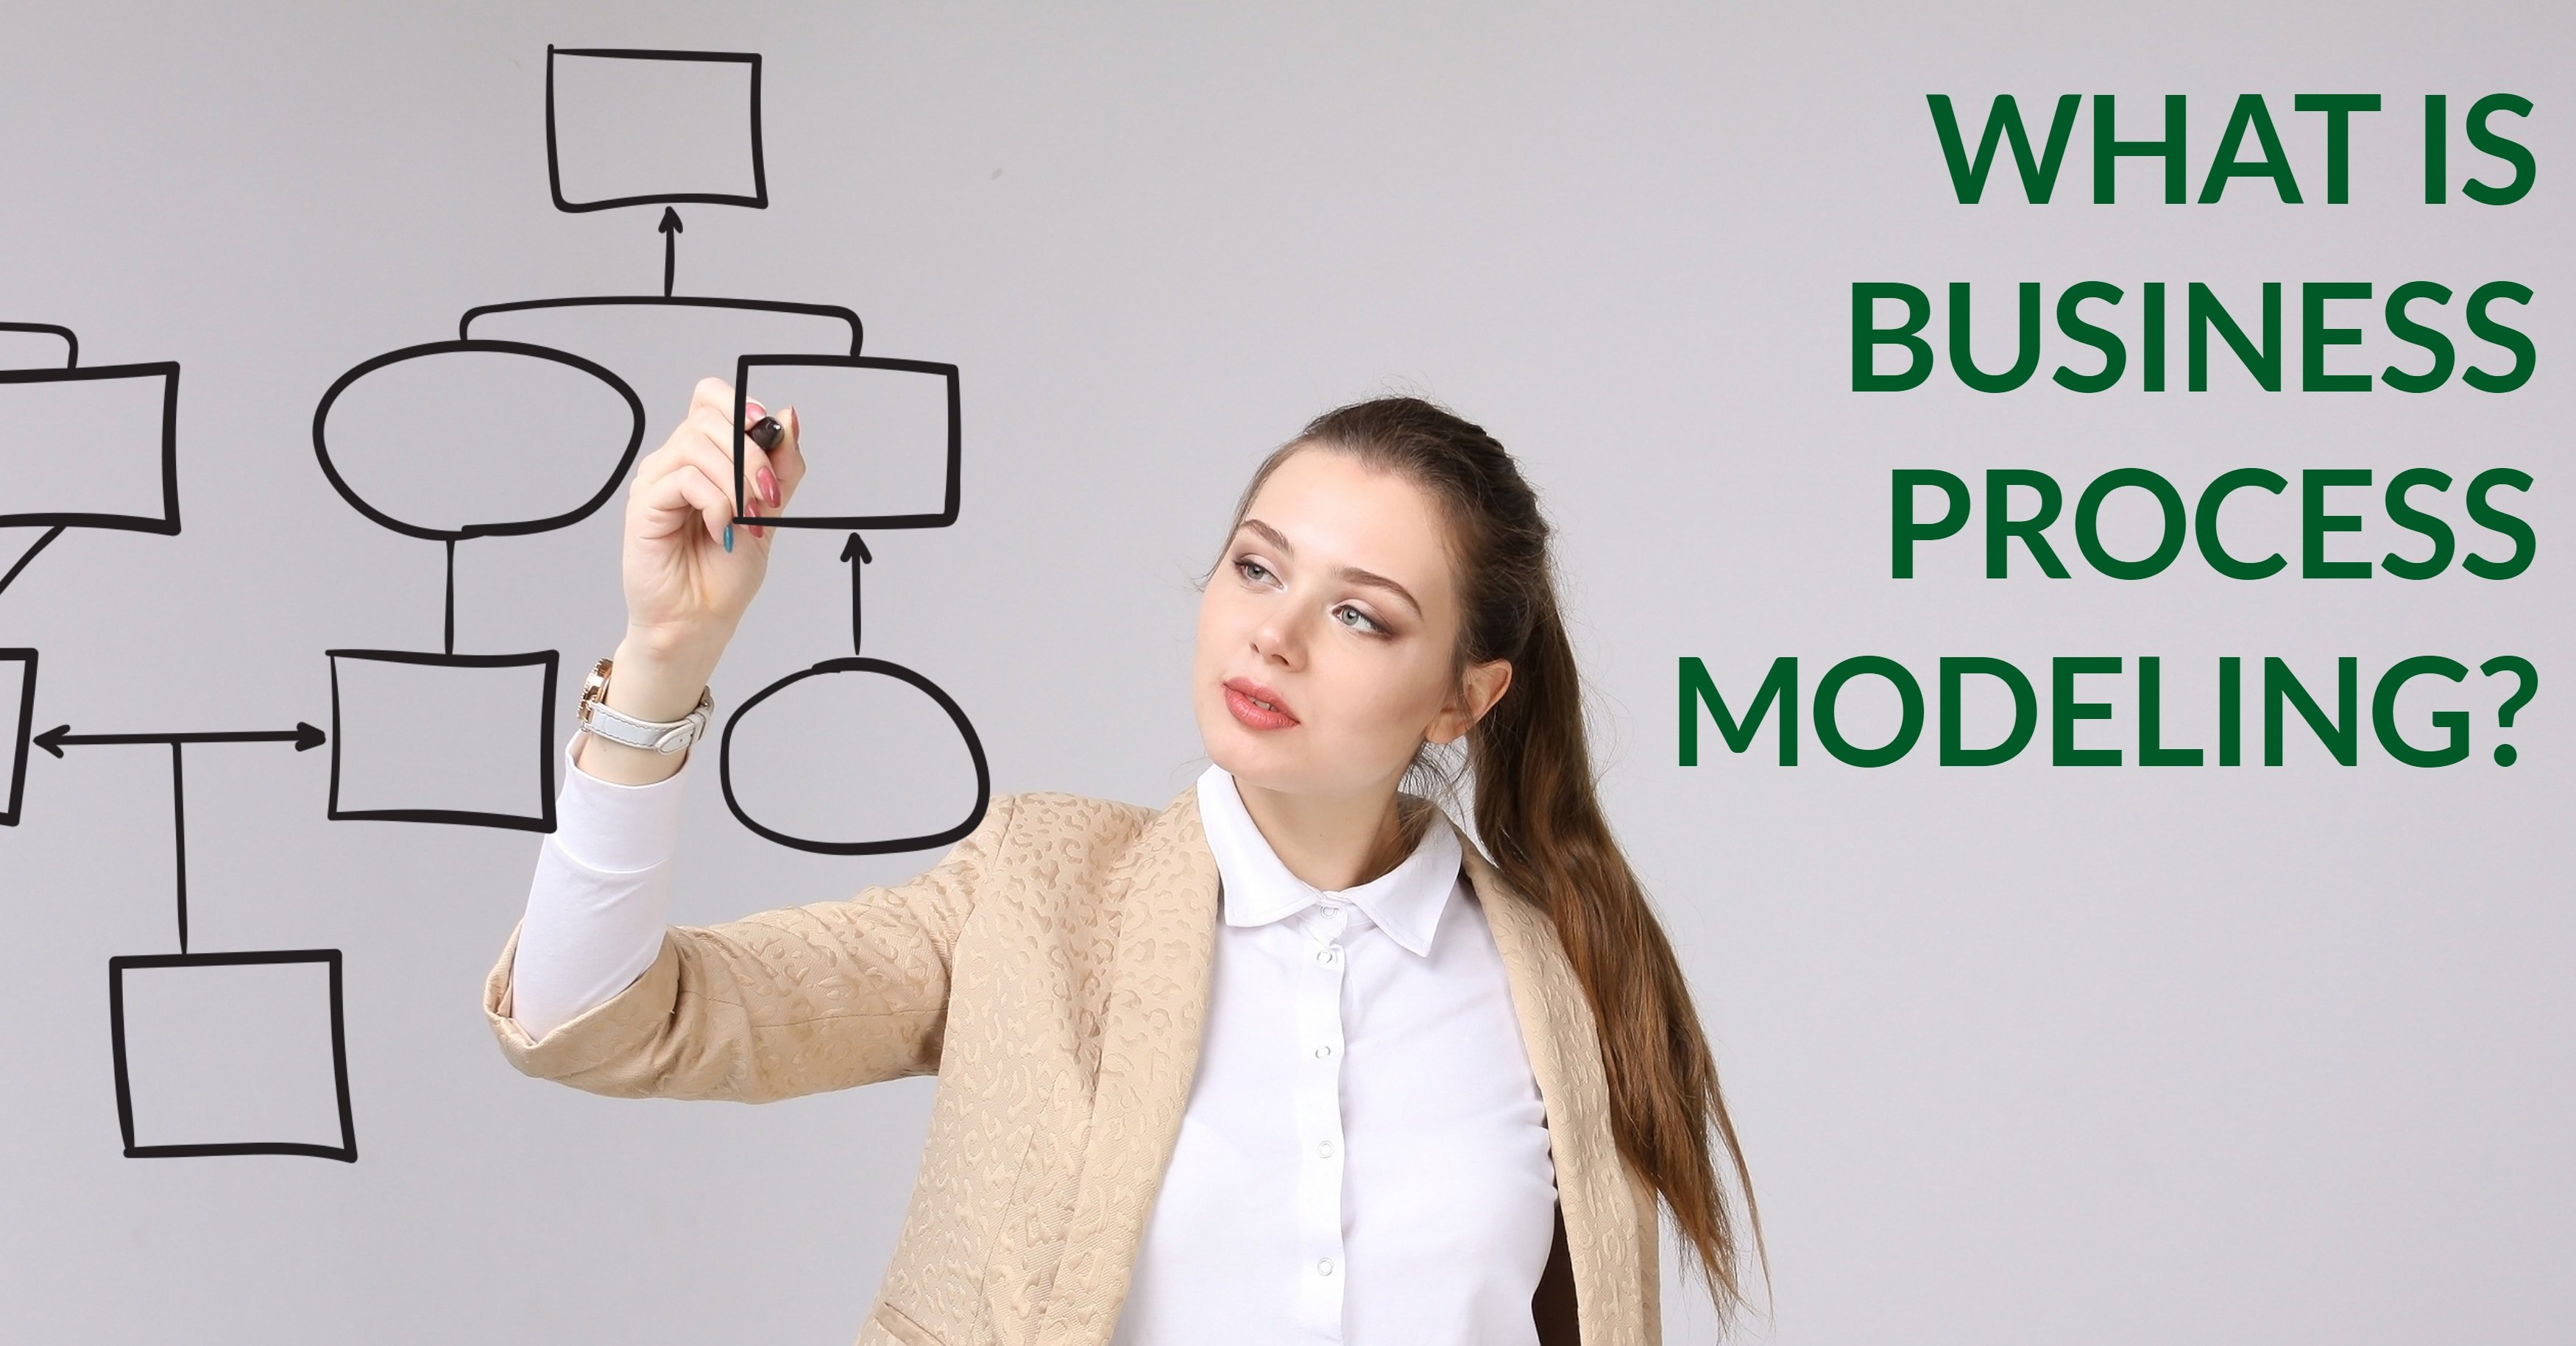 What is Business Process Modeling?